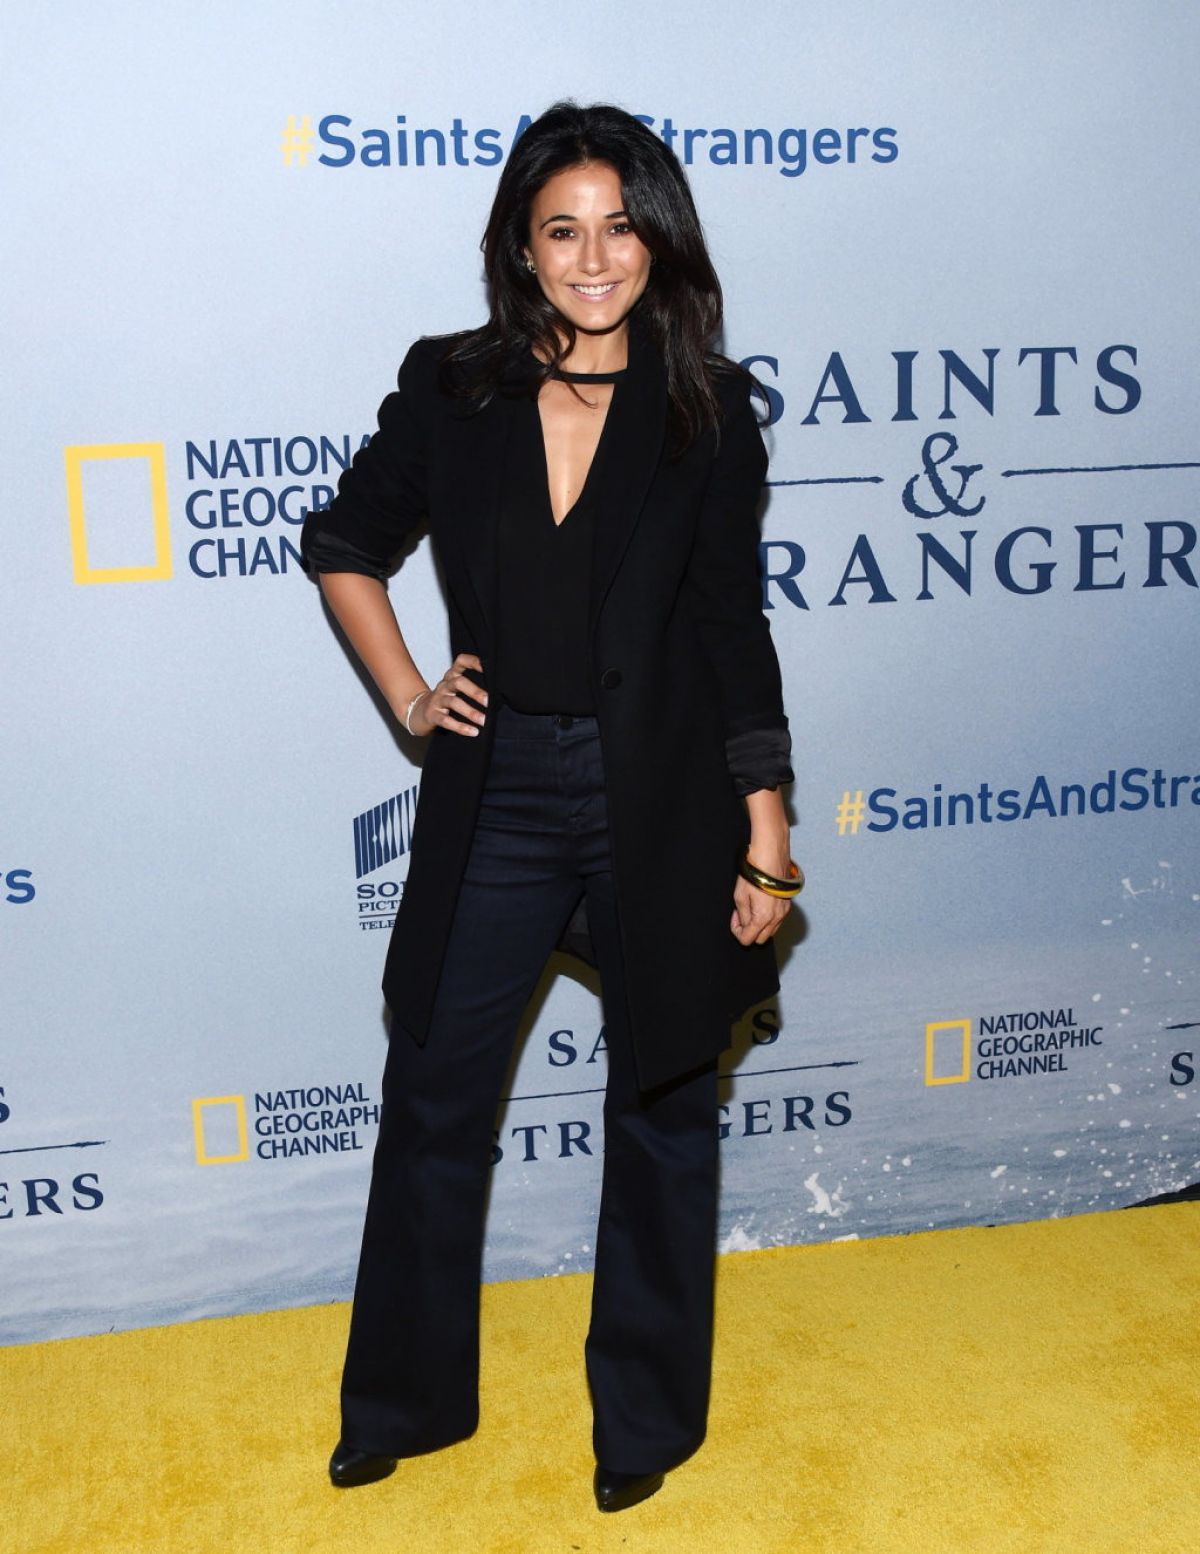 EMMANUELLE CHRIQUI at Saints and Strangers Premiere in Beverly Hills 11/09/2015